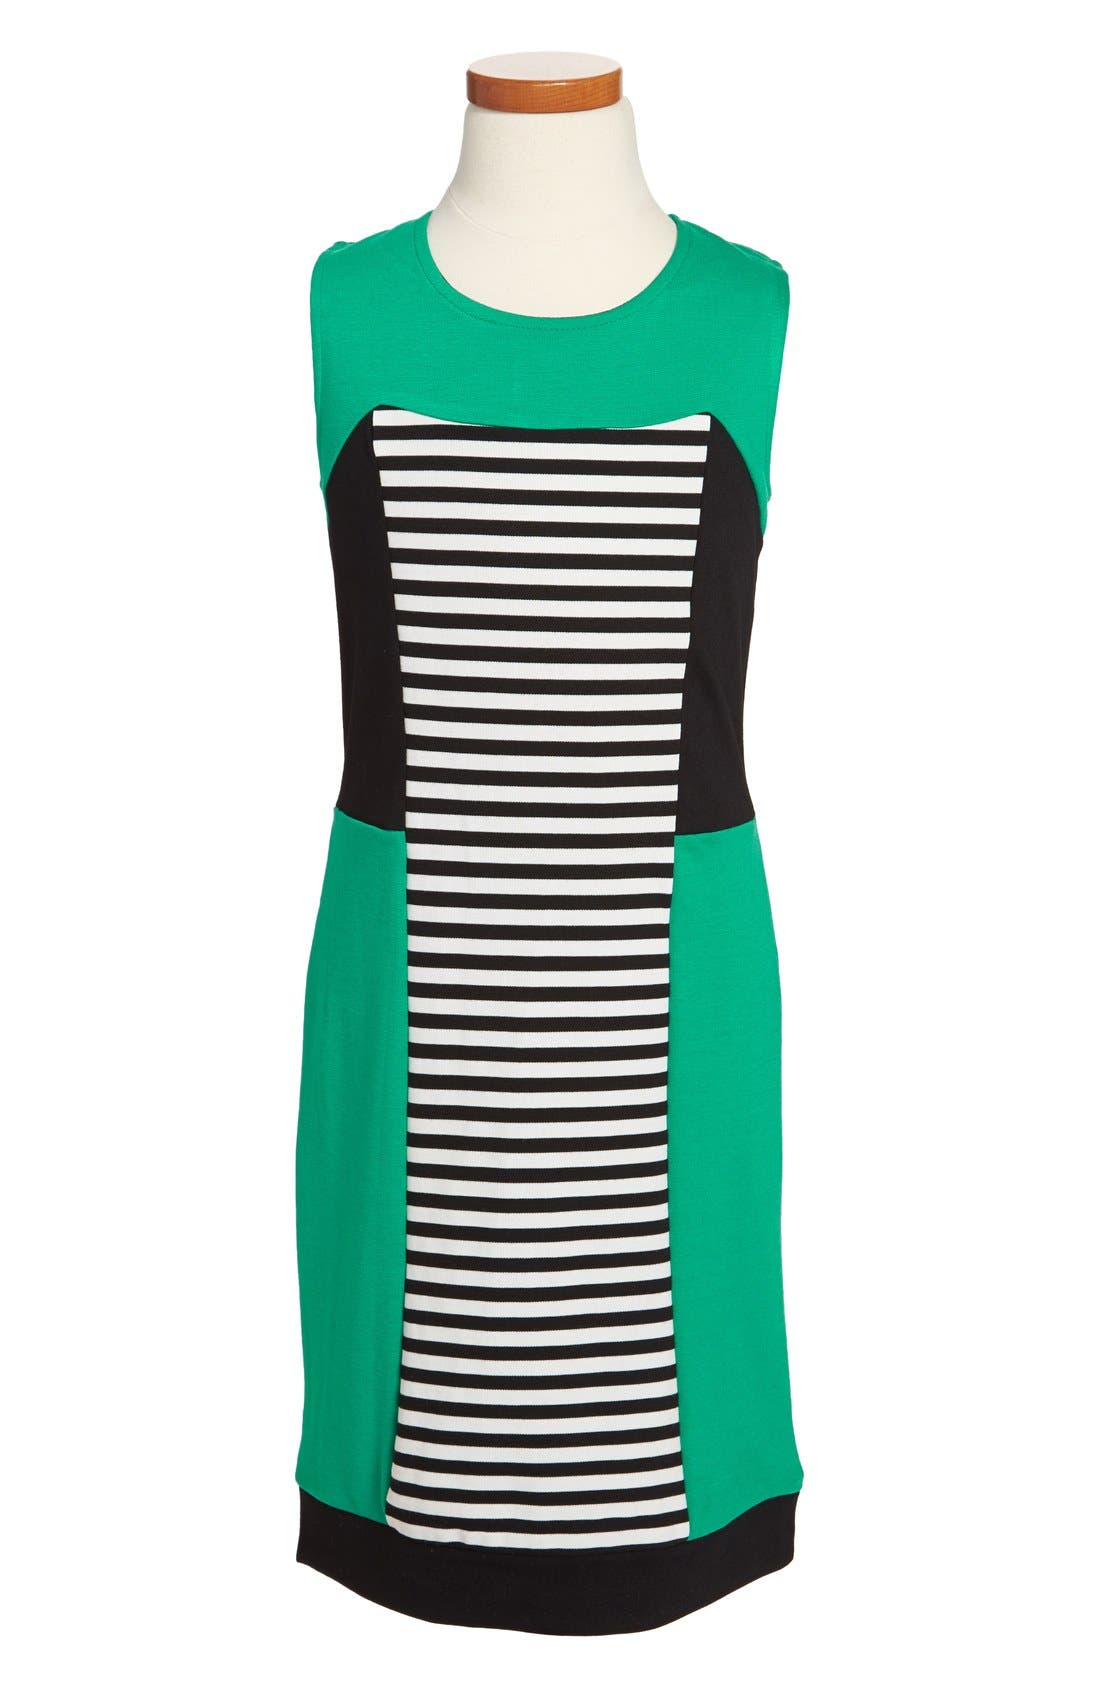 Main Image - Nicole Miller Stripe Colorblock Dress (Big Girls)